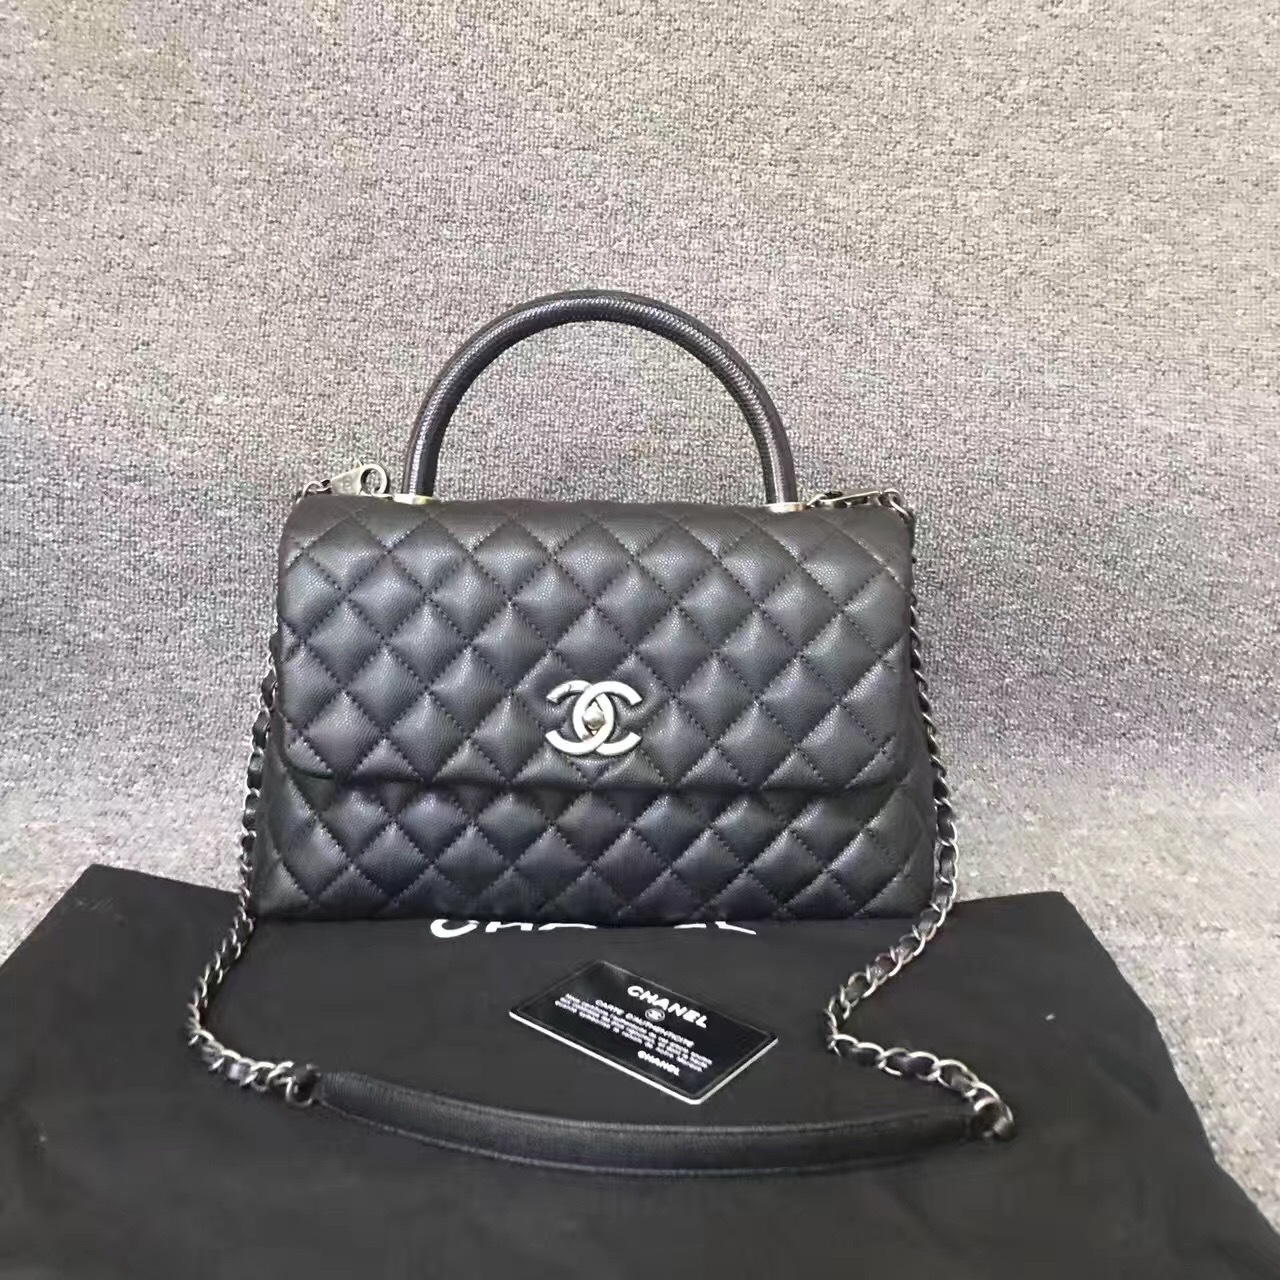 18c4d641f03d02 Img 4520. Img 4520. Previous. 100% AUTH NEW CHANEL 2016/2017 MEDIUM PYTHON COCO  HANDLE BAG BLACK CAVIAR